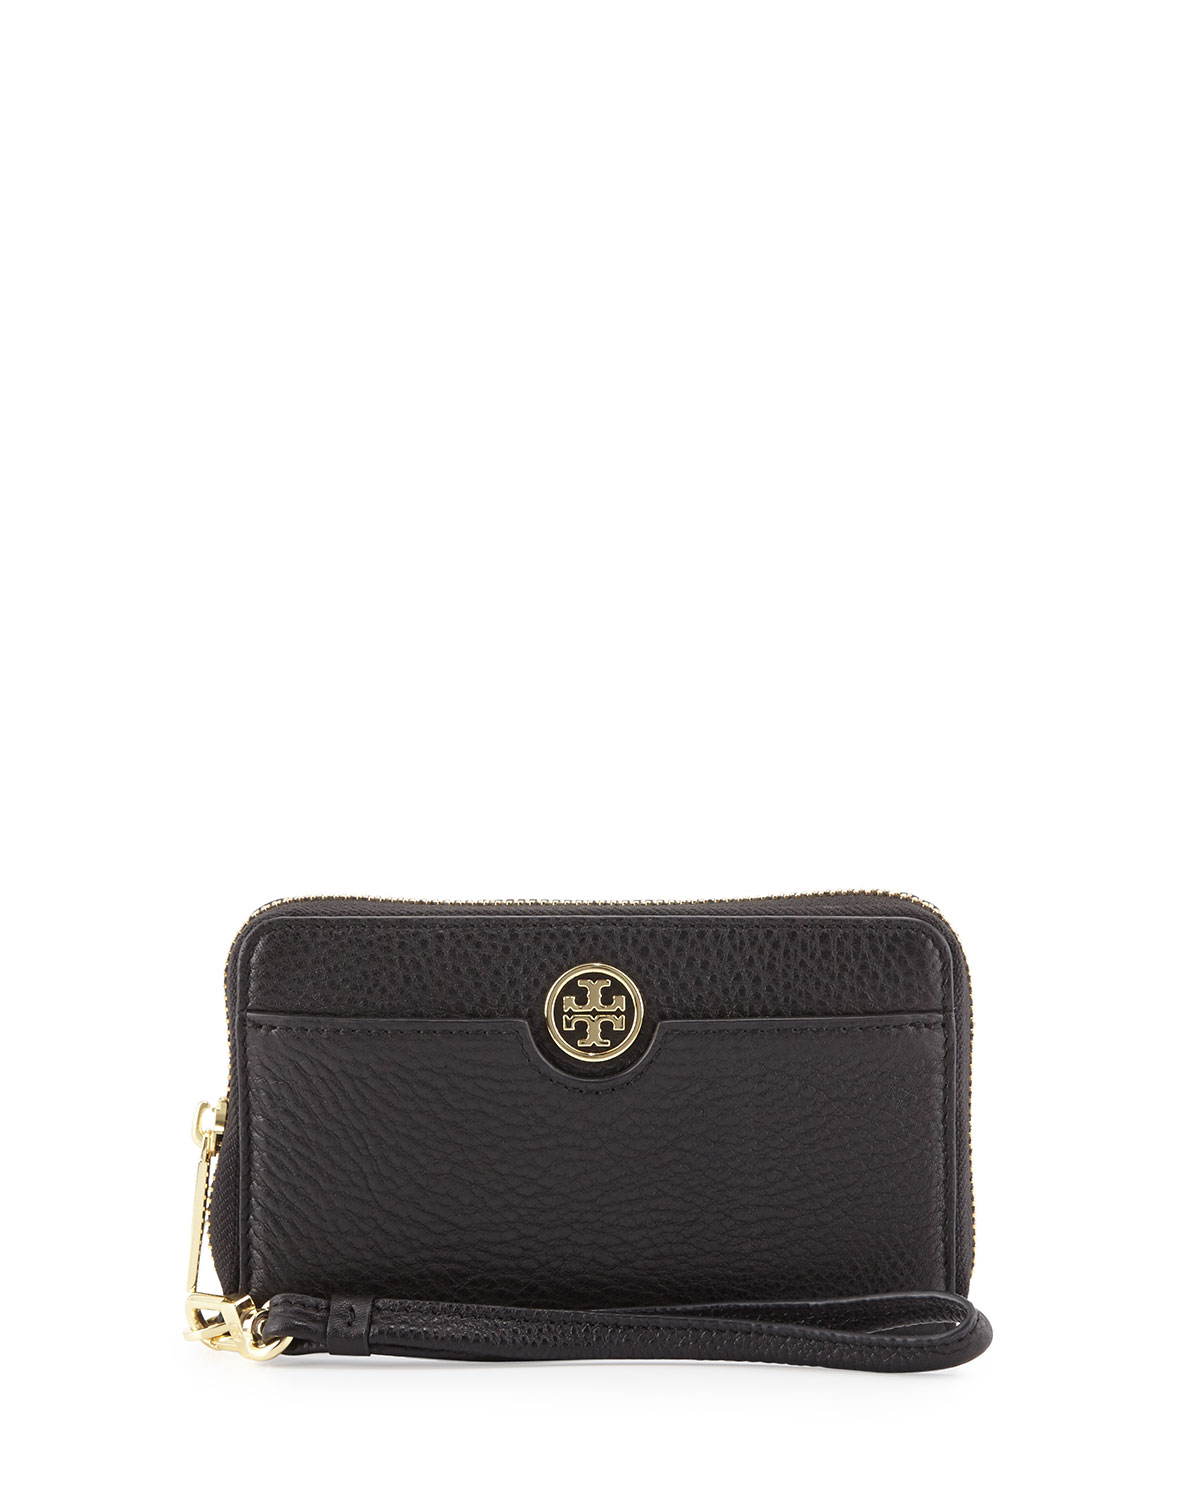 bbc197867879 Tory Burch Robinson Pebbled Leather Smartphone Wristlet Wallet ...